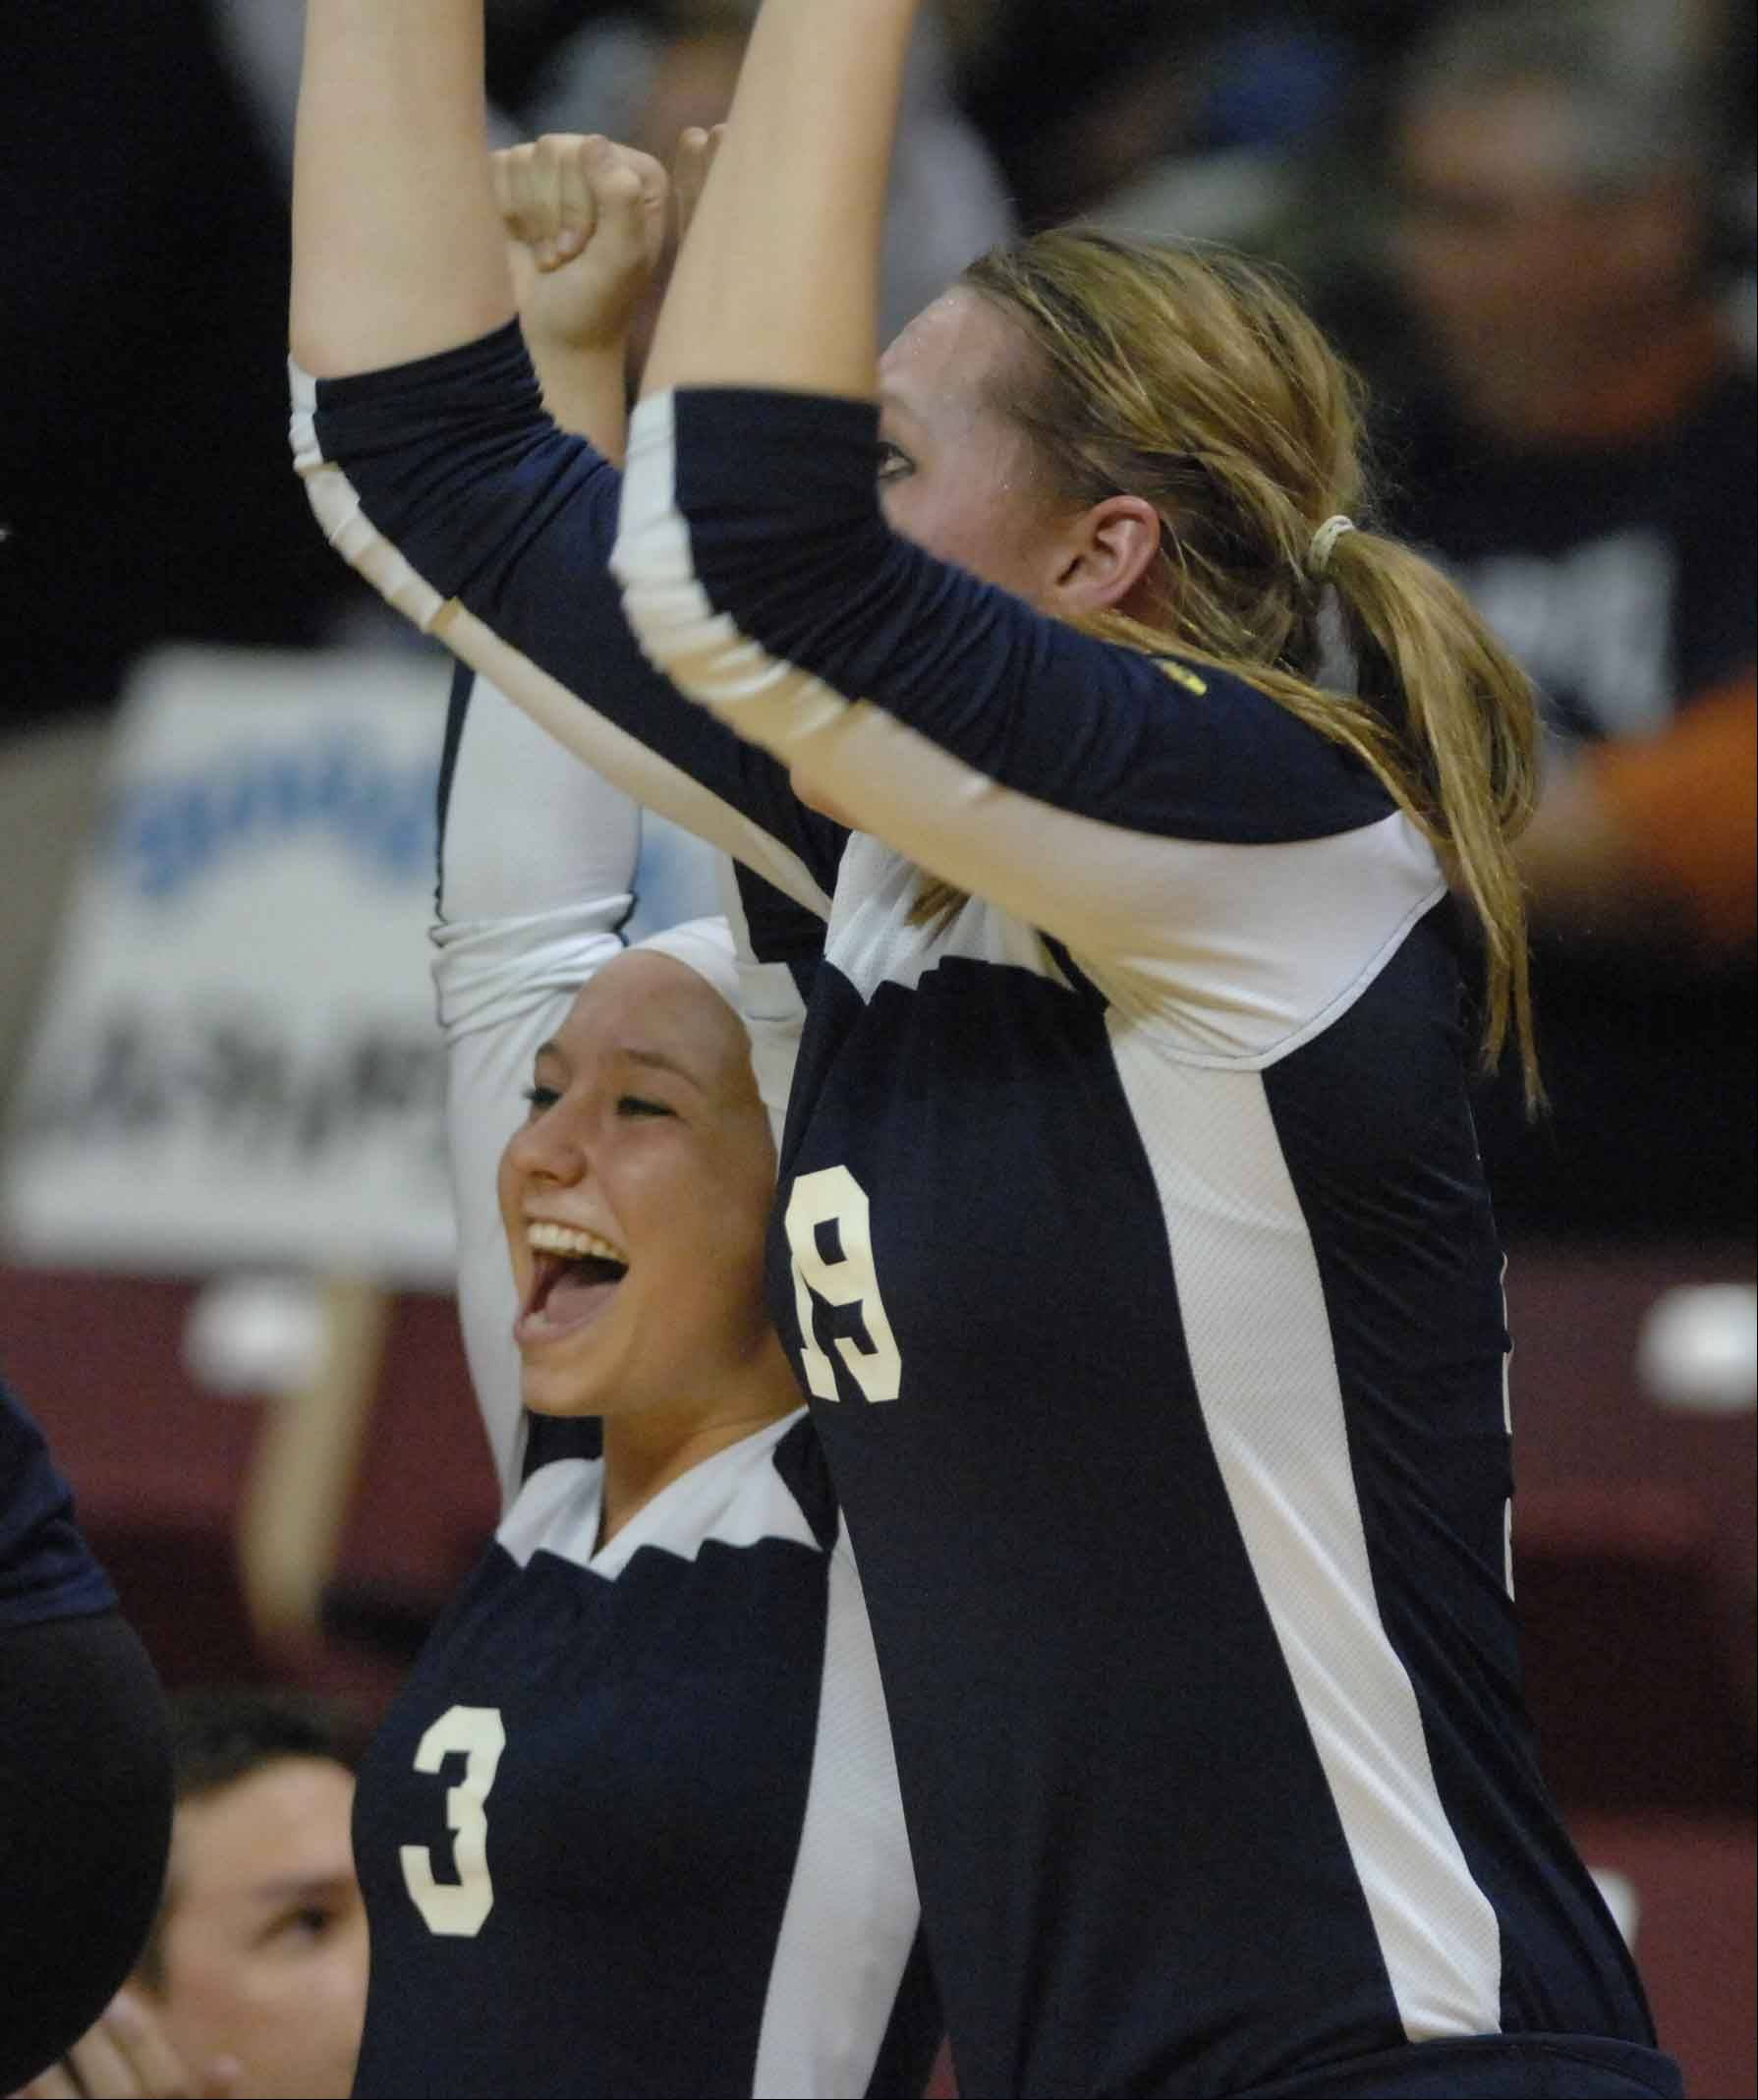 Cary-Grove vs. Marist girls state volleyball 4A semifinal action Friday in Normal.